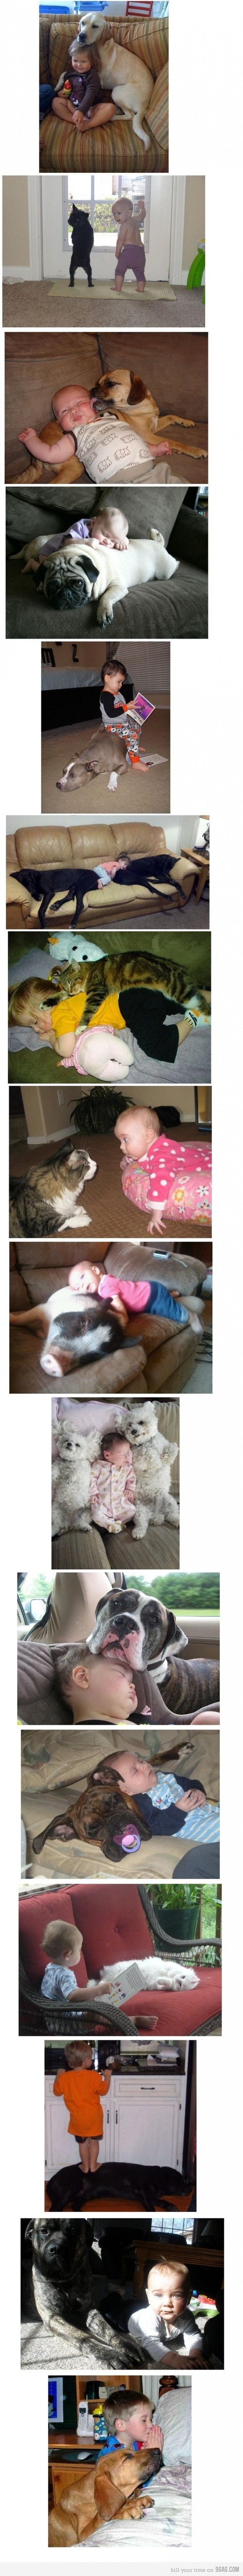 3169871 700b large 9GAG   Why does kids need an animal?!